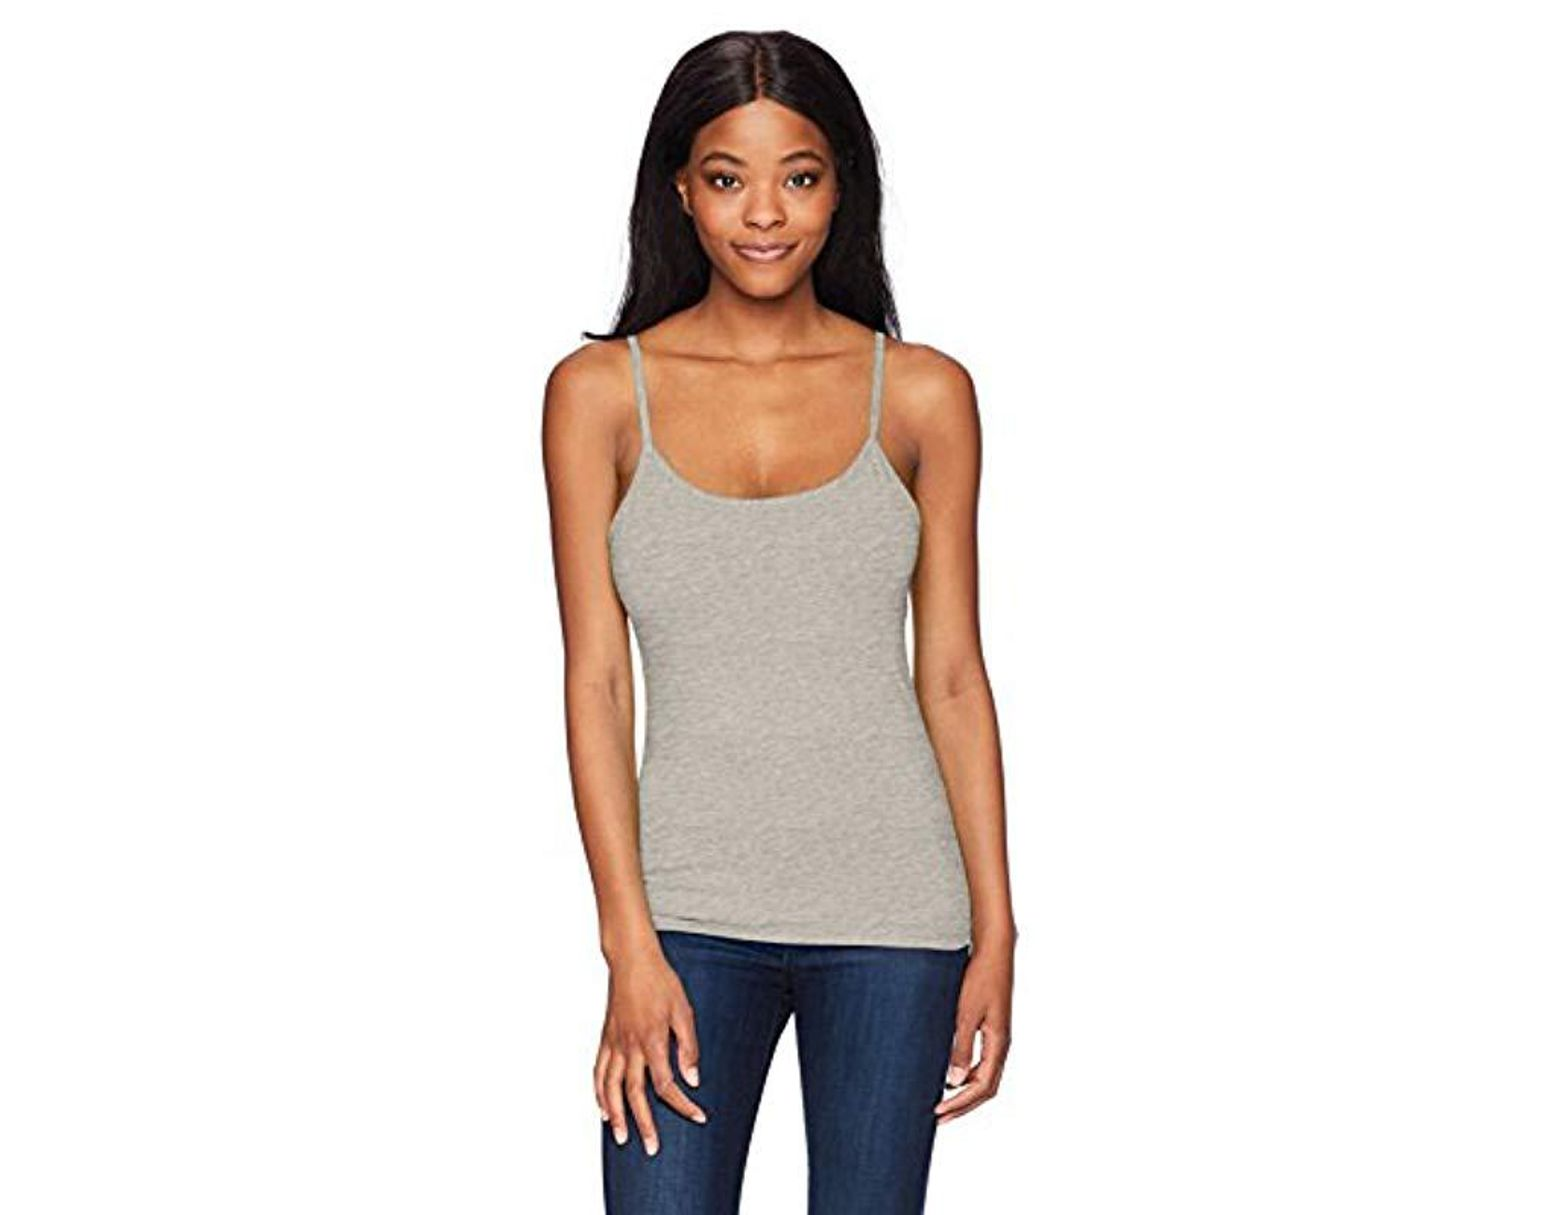 f7a59ff08cf10 Hanes Stretch Cotton Cami With Built-in Shelf Bra in Gray - Save 9% - Lyst